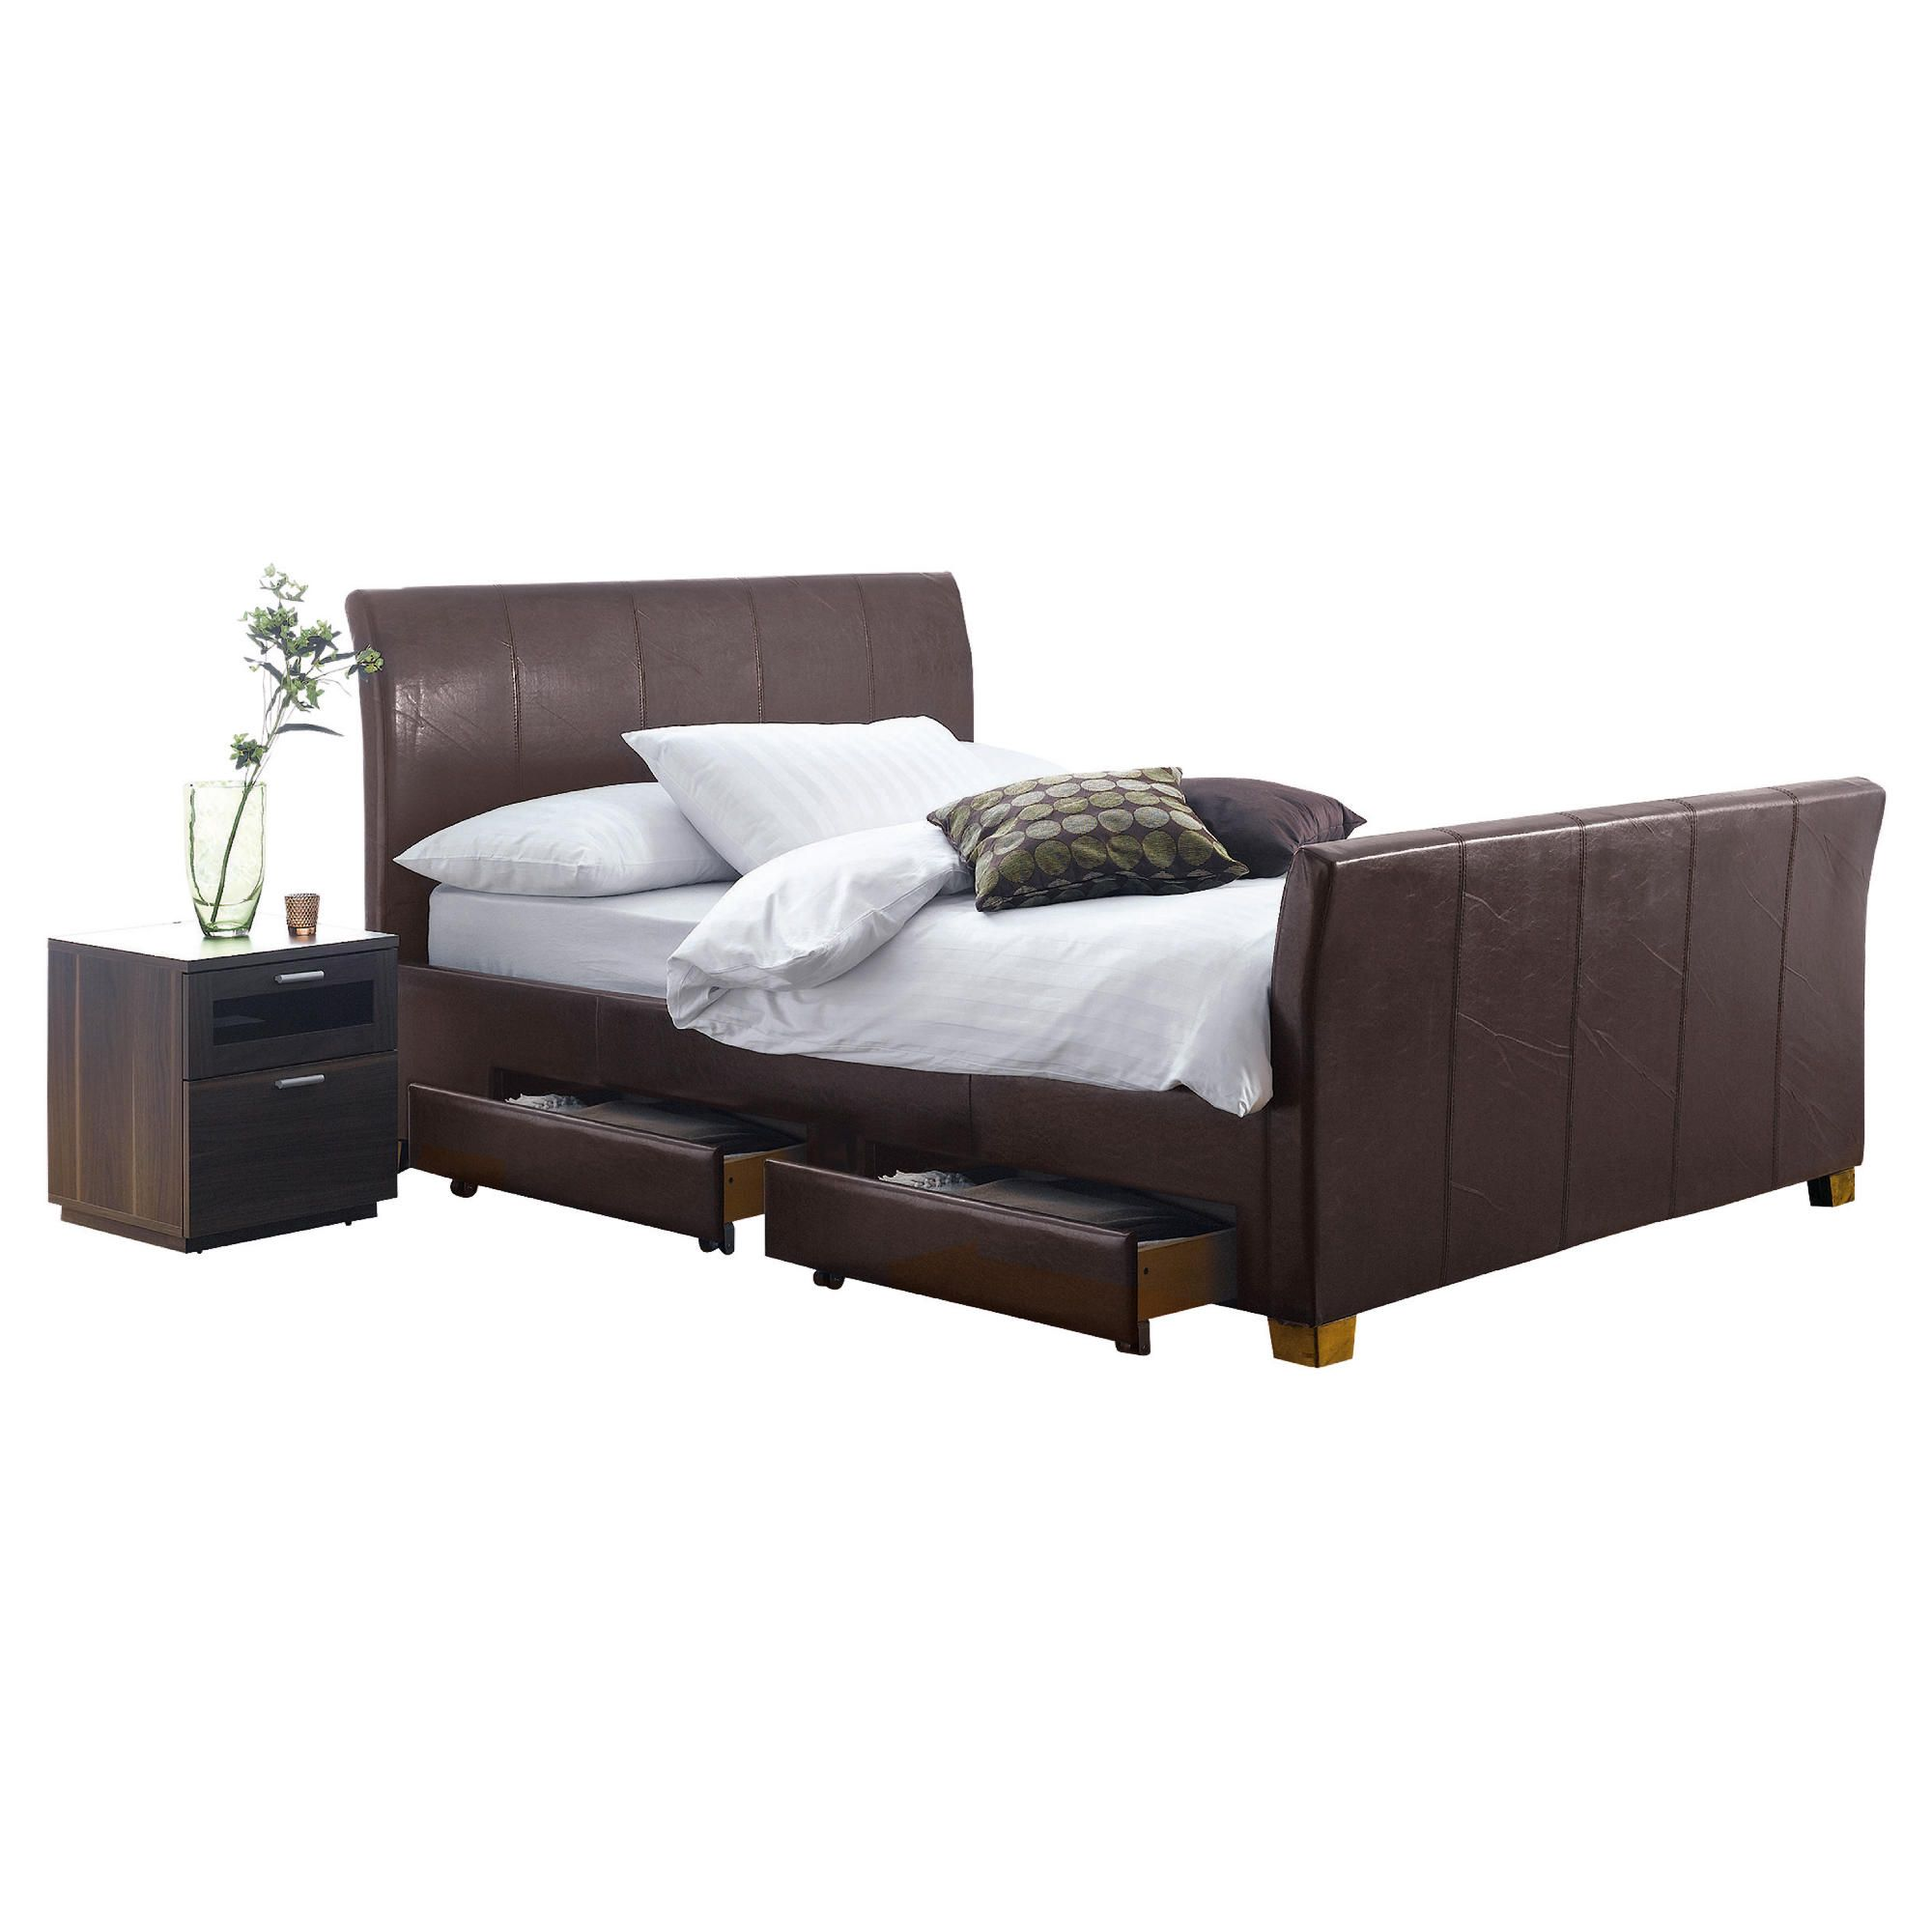 Rayne King Faux Leather Bed Frame with 4 Drawers, Brown at Tesco Direct